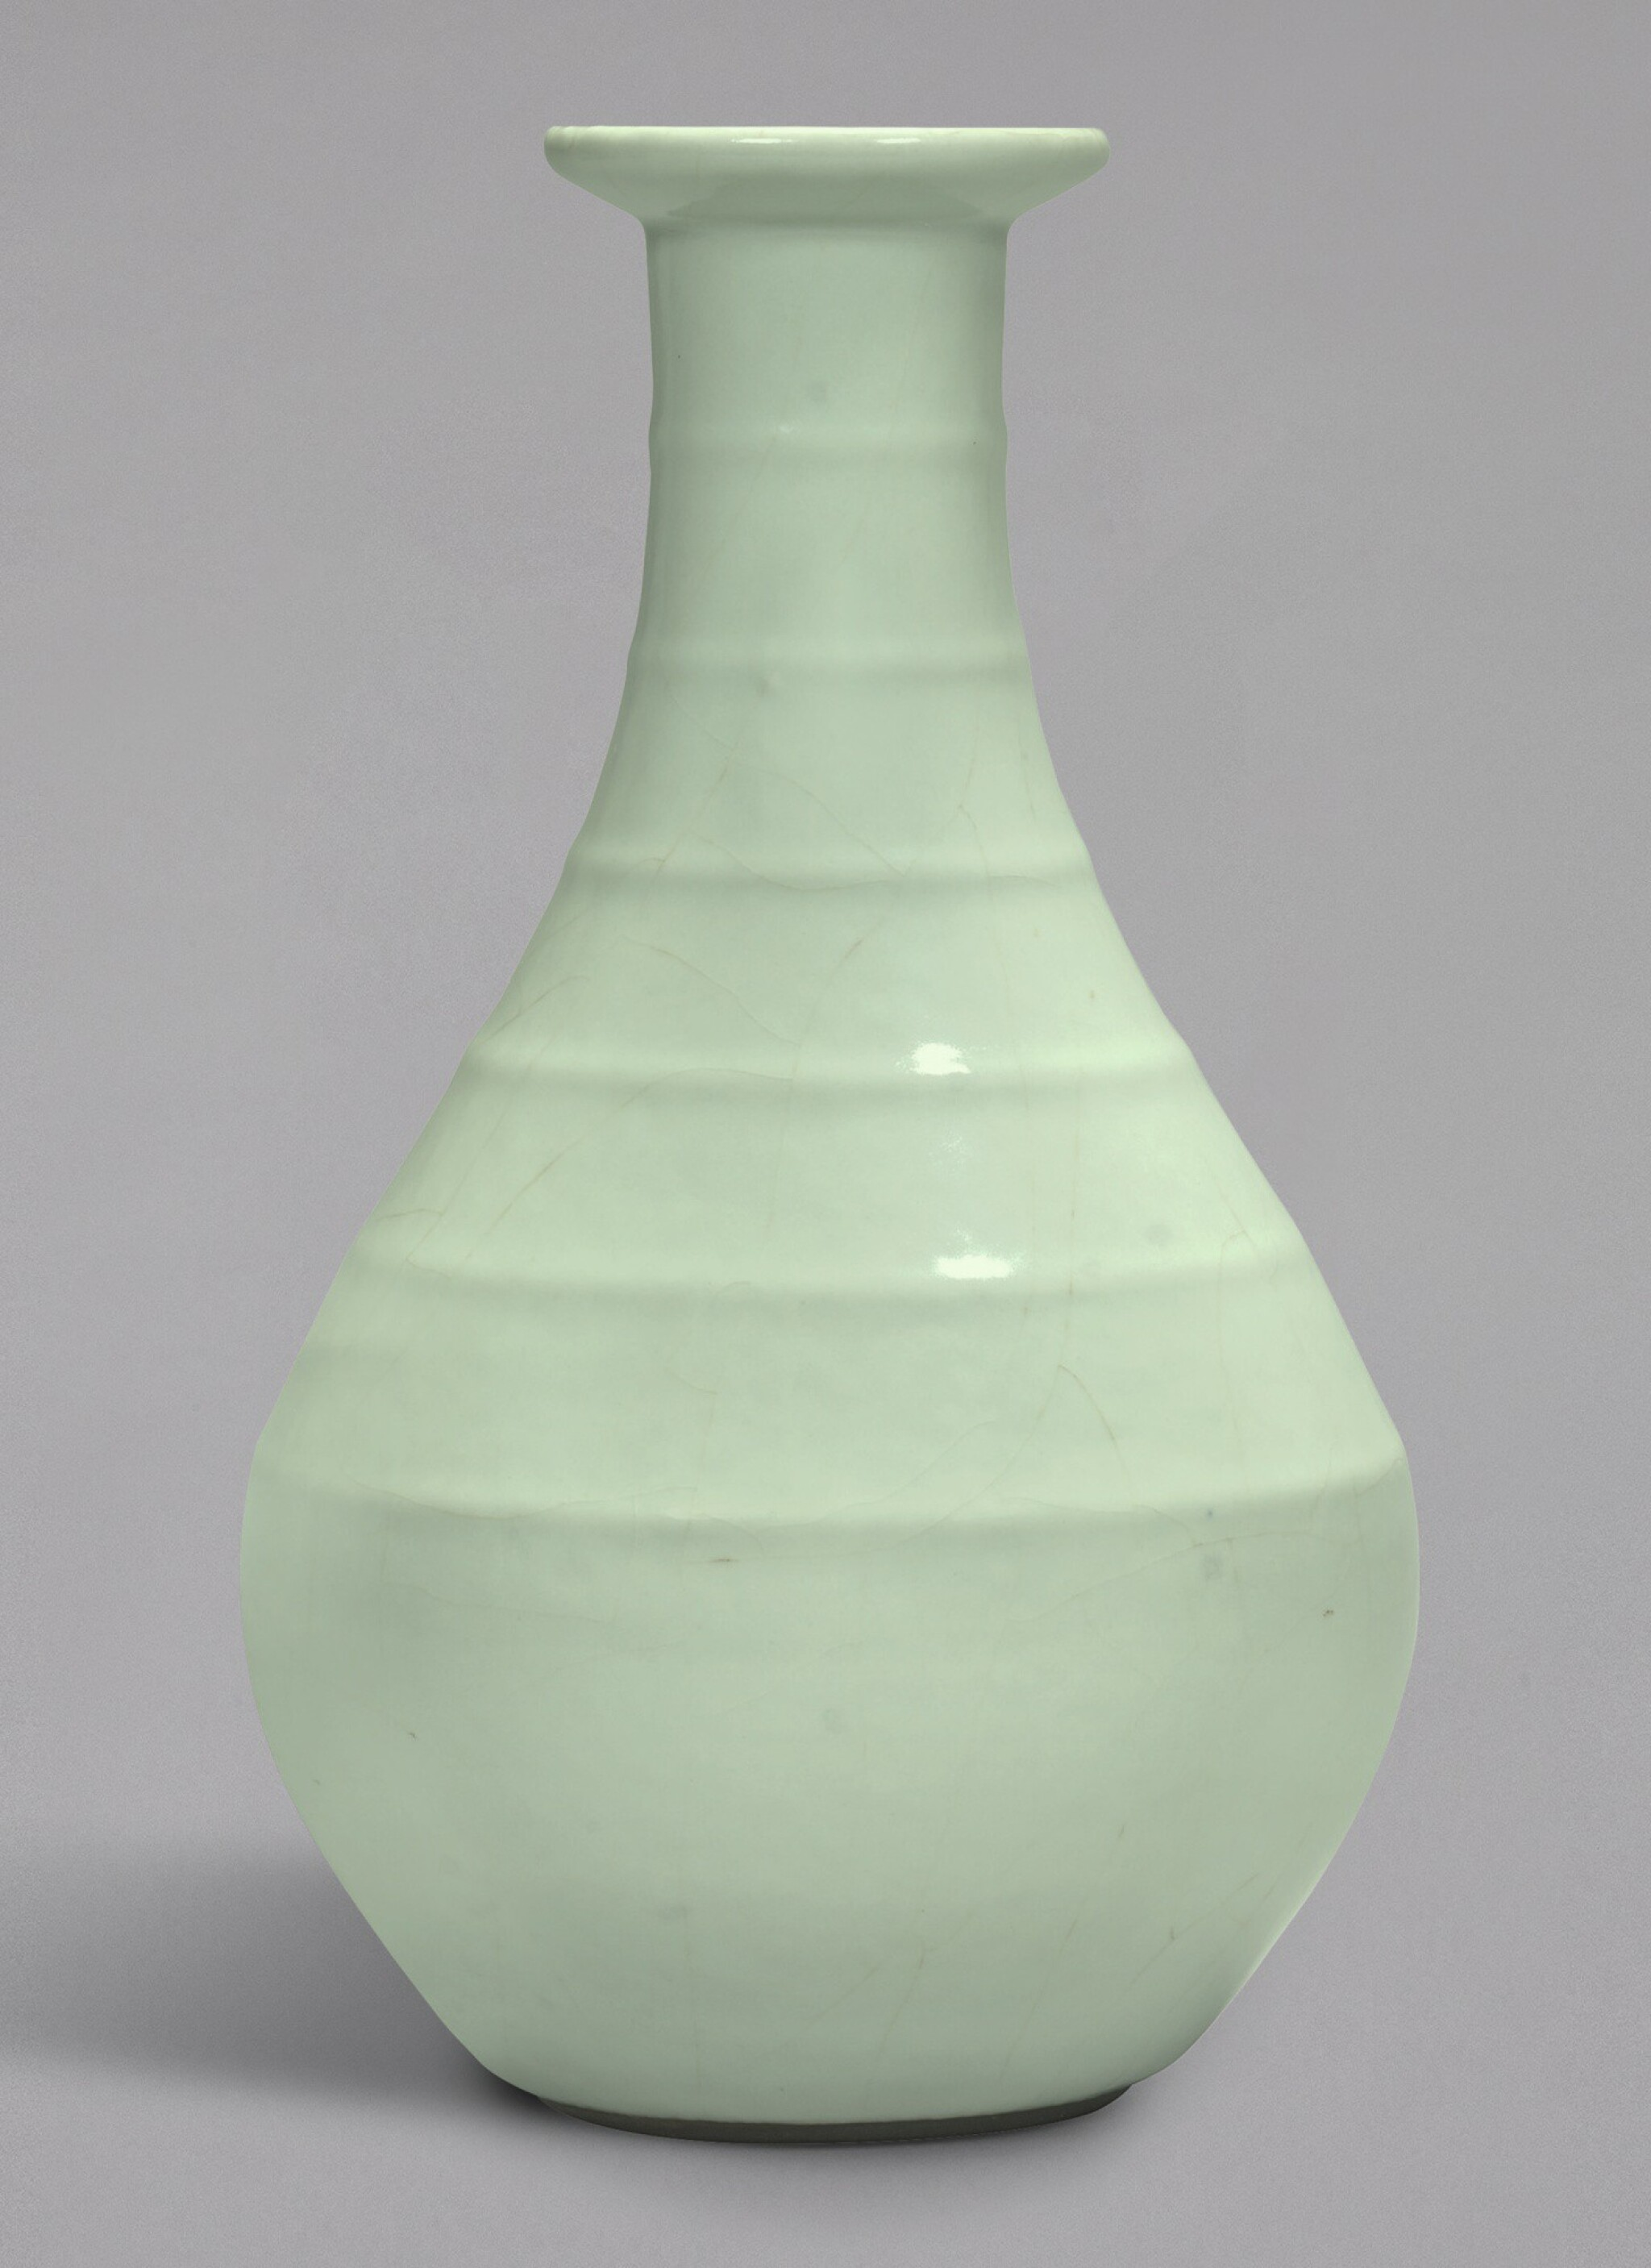 View 1 of Lot 4. A FINE AND RARE GUAN-TYPE RIBBED VASE, YONGZHENG SEAL MARK AND PERIOD   清雍正 仿官釉弦紋盤口瓶 《大清雍正年製》款.